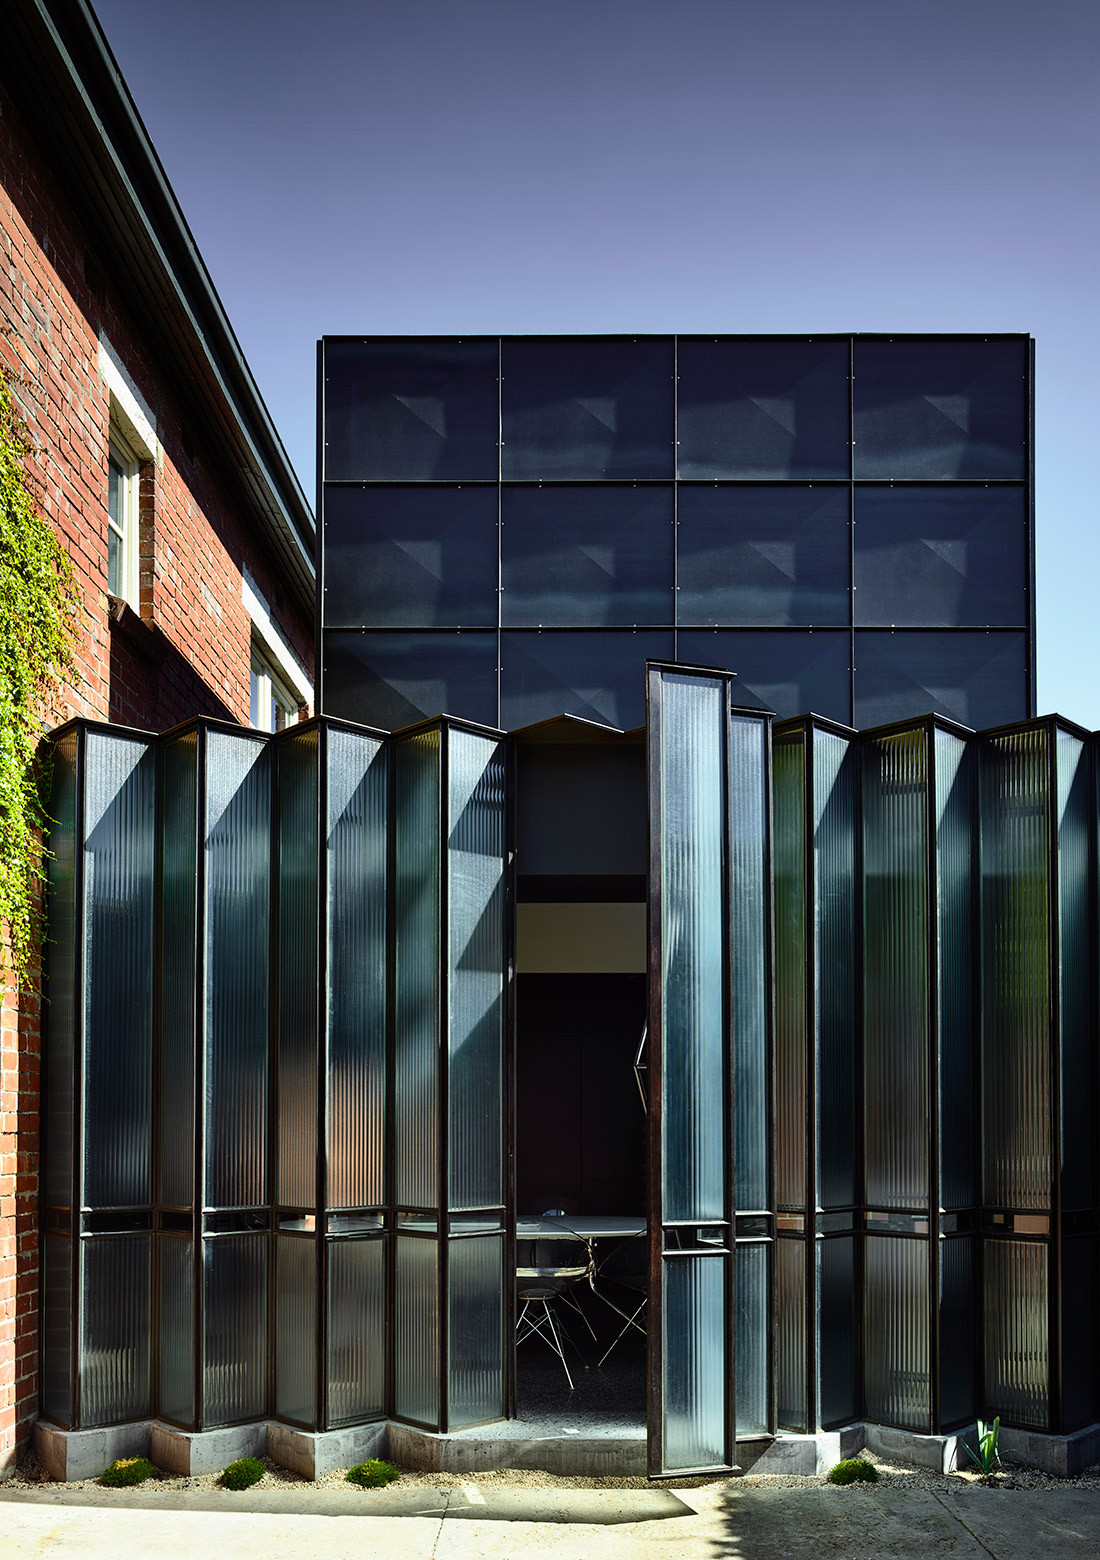 The Powell Street House, designed by Robert Simeoni for Stephen Crafti, has received multiple awards in the local, national and international arenas.